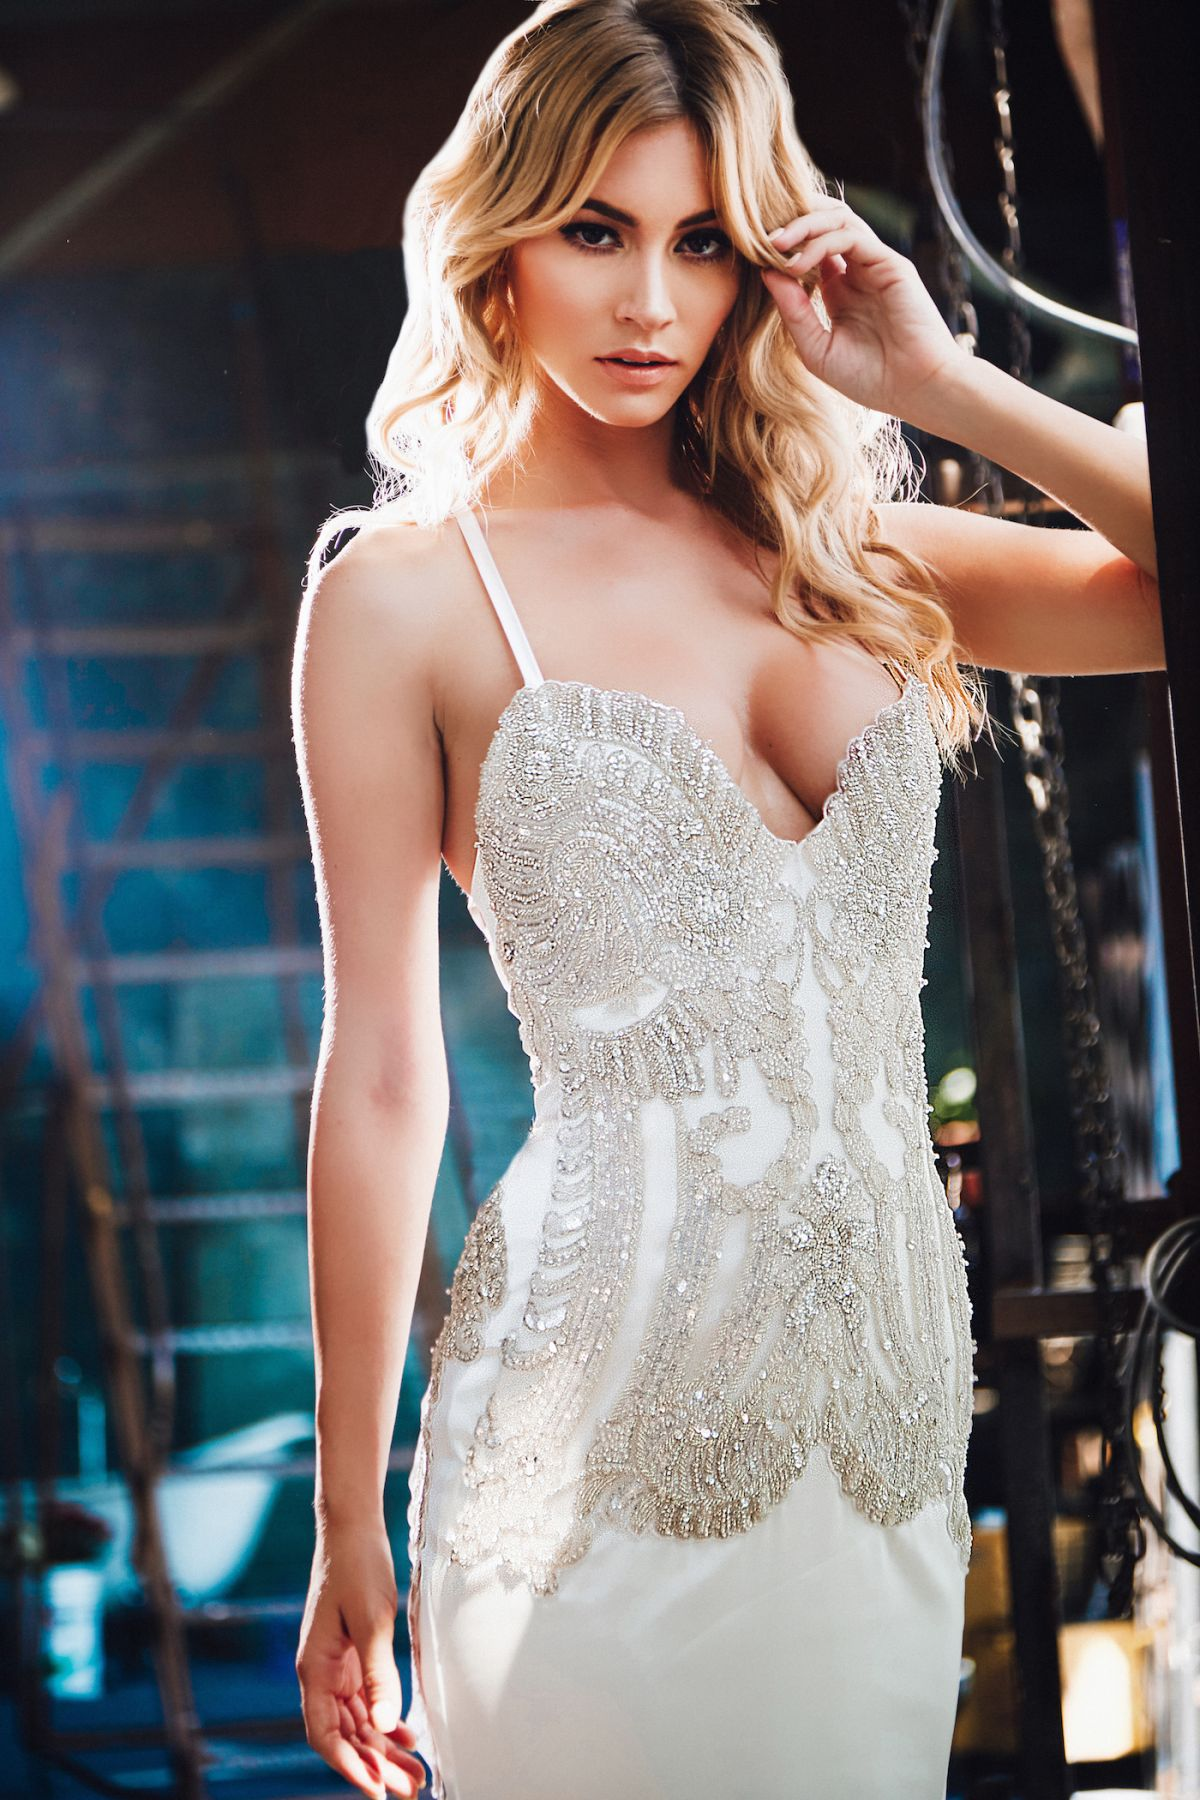 BRYANA HOLLY in Lurelly Bridal Lookbook